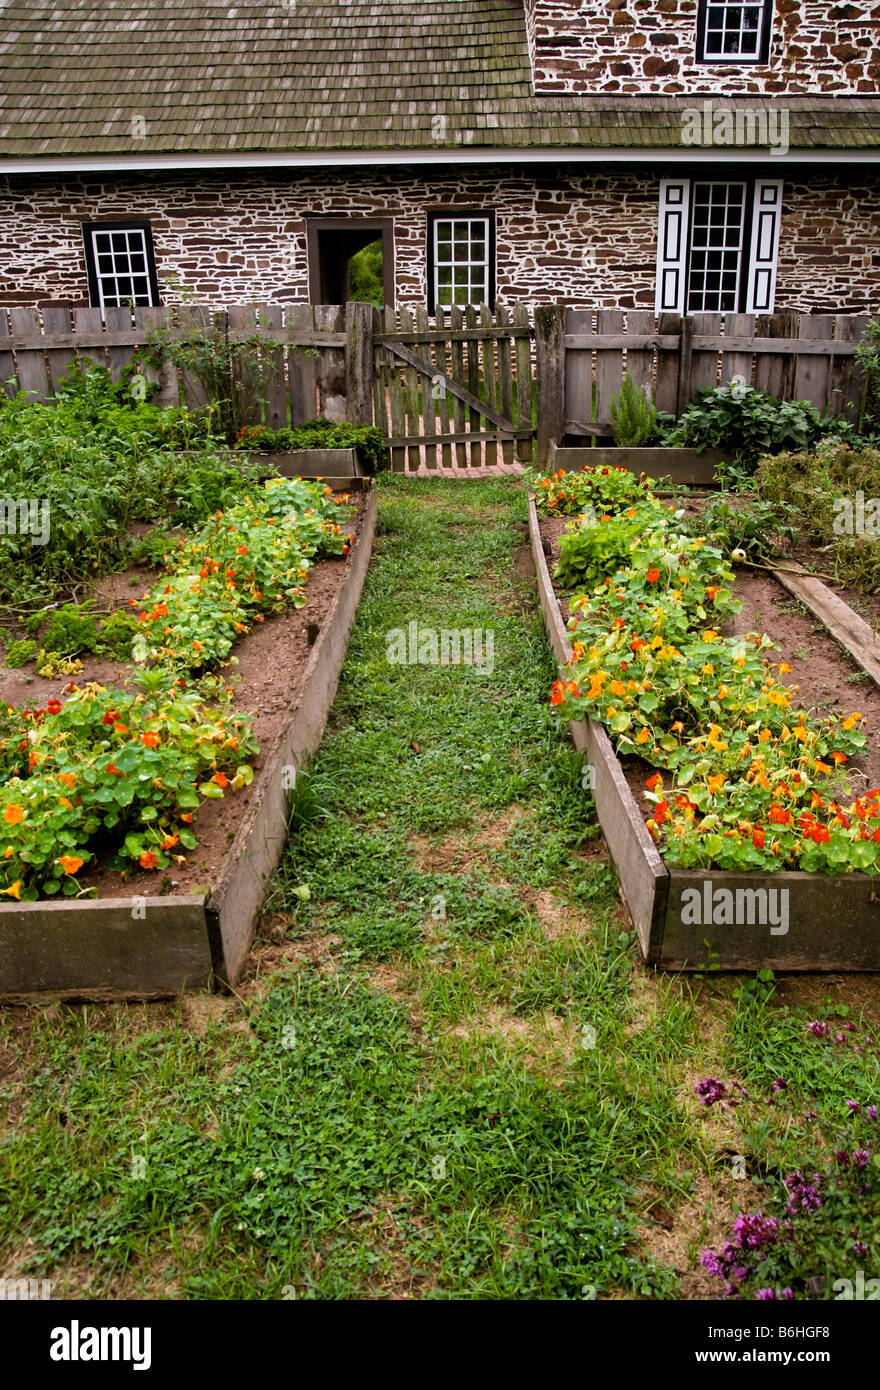 A Pennsylvanian Early/Colonial American field stone house and ...